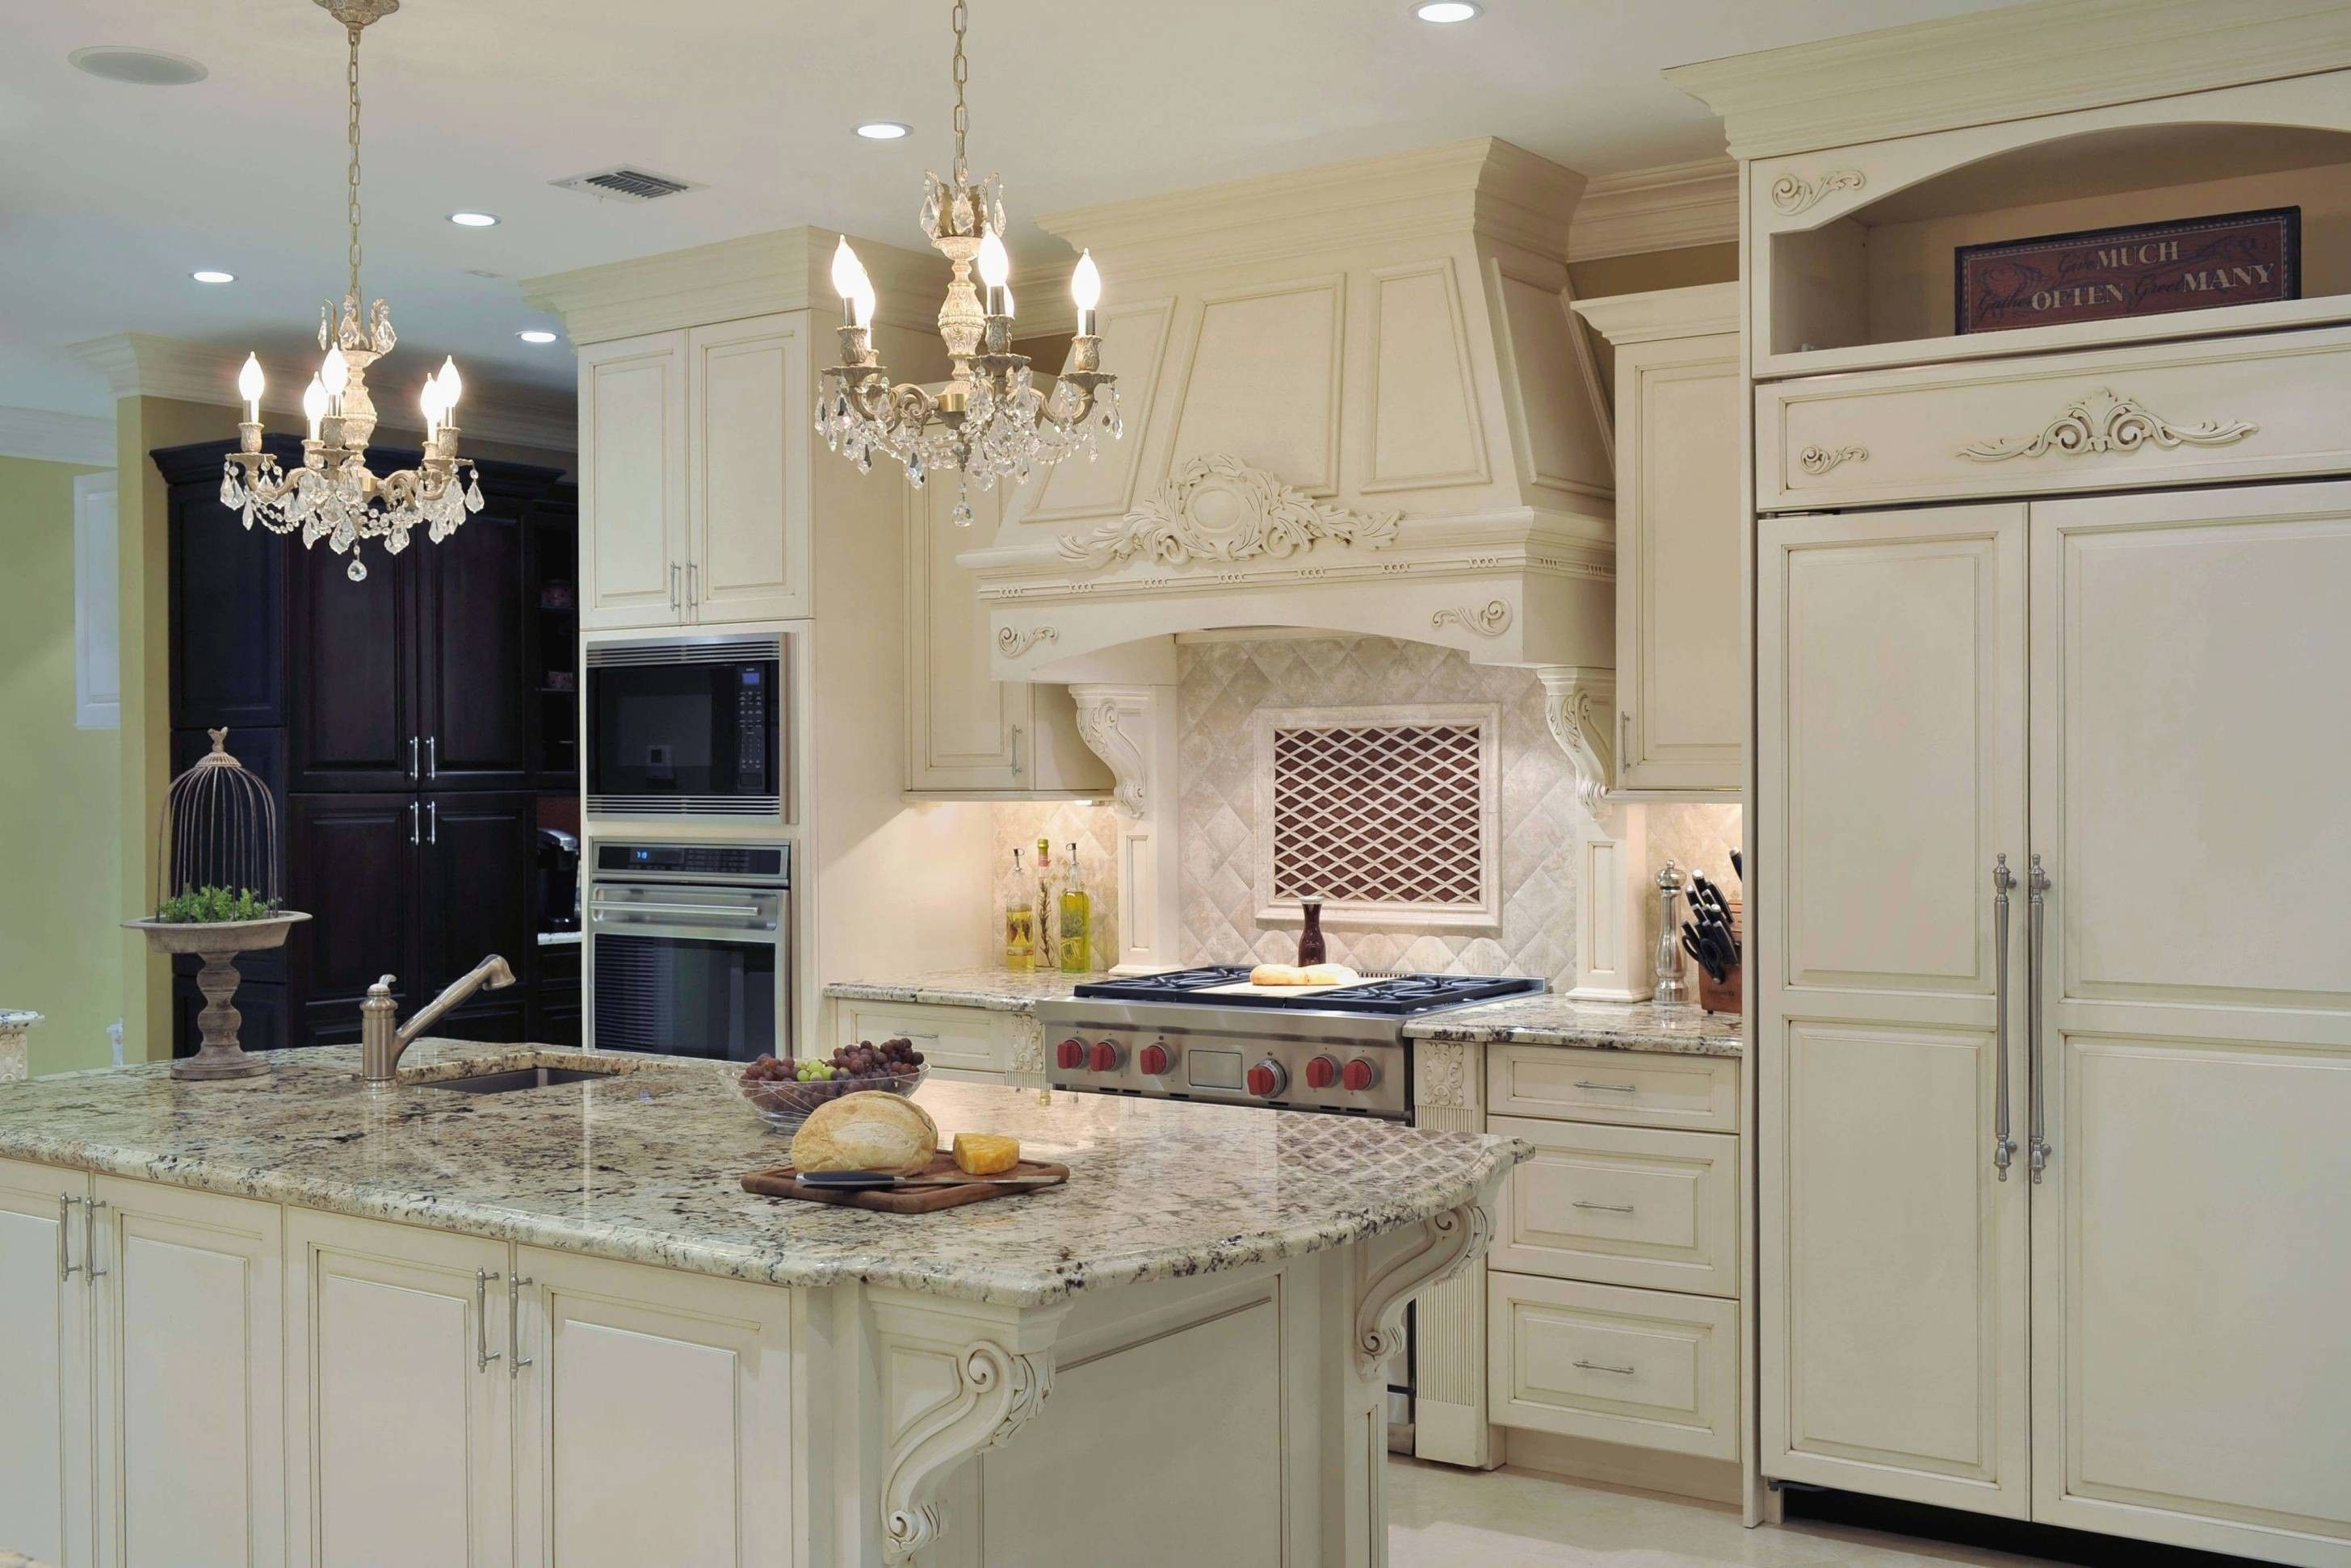 10 Best Cost New Kitchen Cabinets Home Depot | Kitchen ...